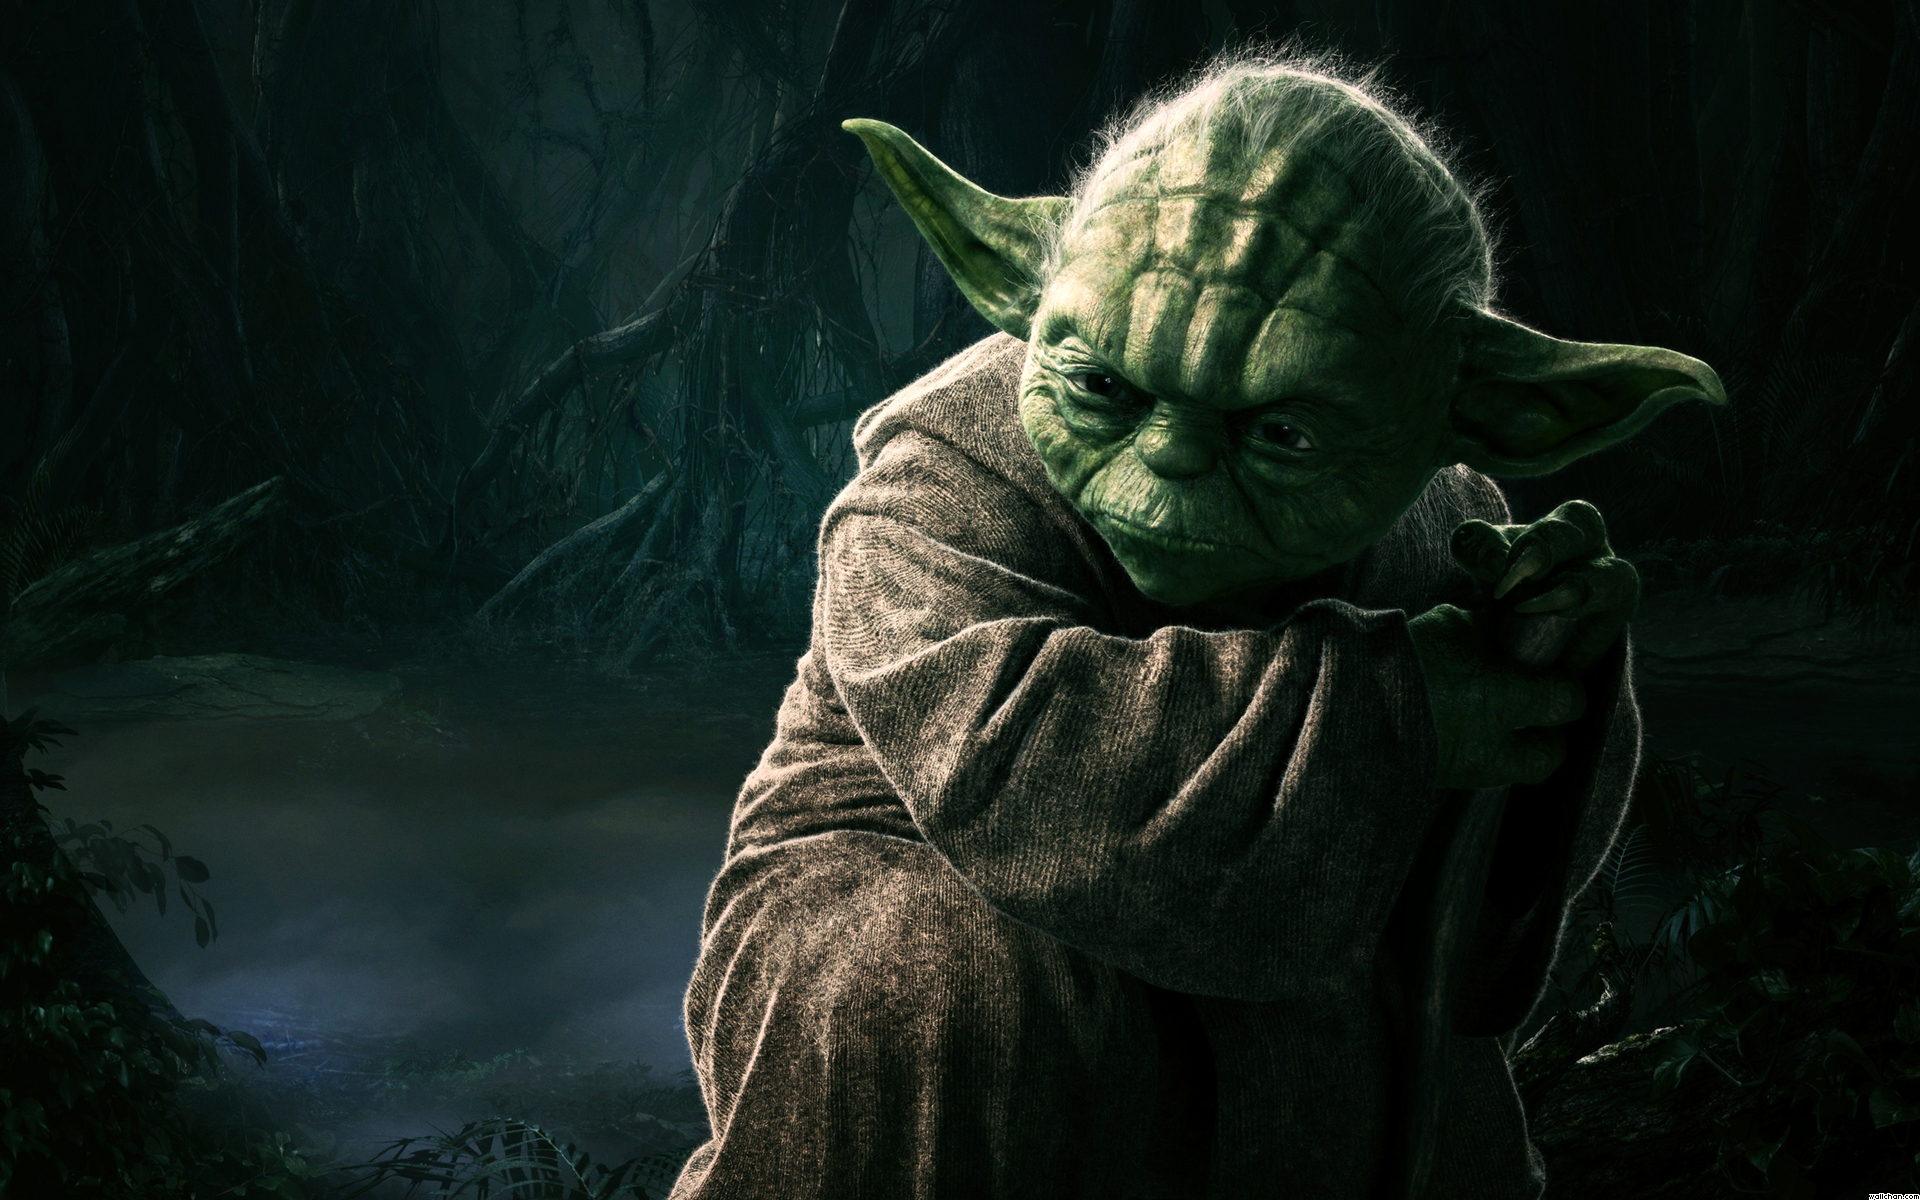 Yoda Wallpaper - Star Wars Wallpaper (30766197) - Fanpop